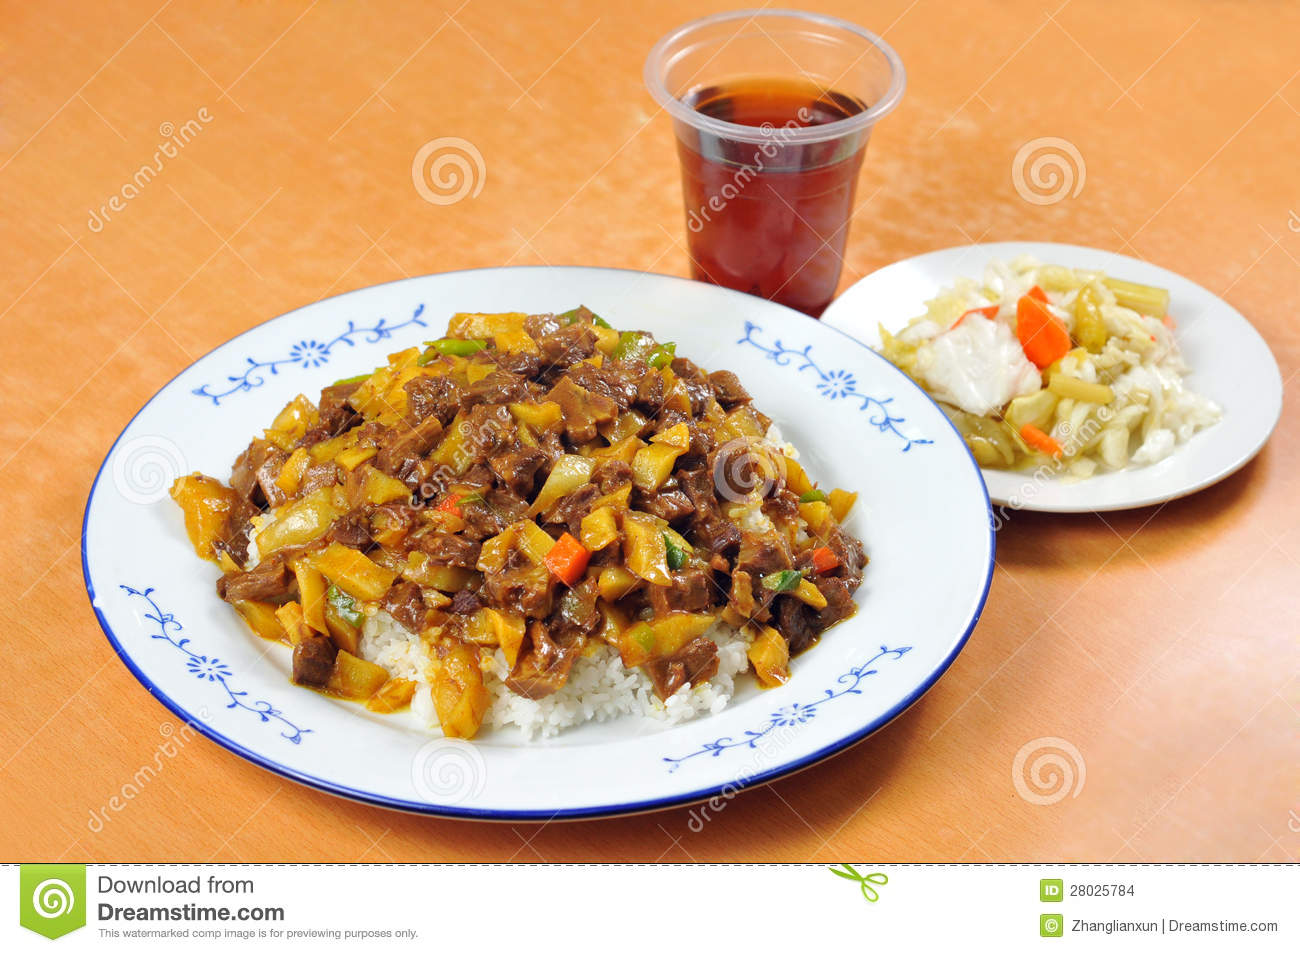 Chinese cuisine stock images image 28025784 for Ajk chinese cuisine